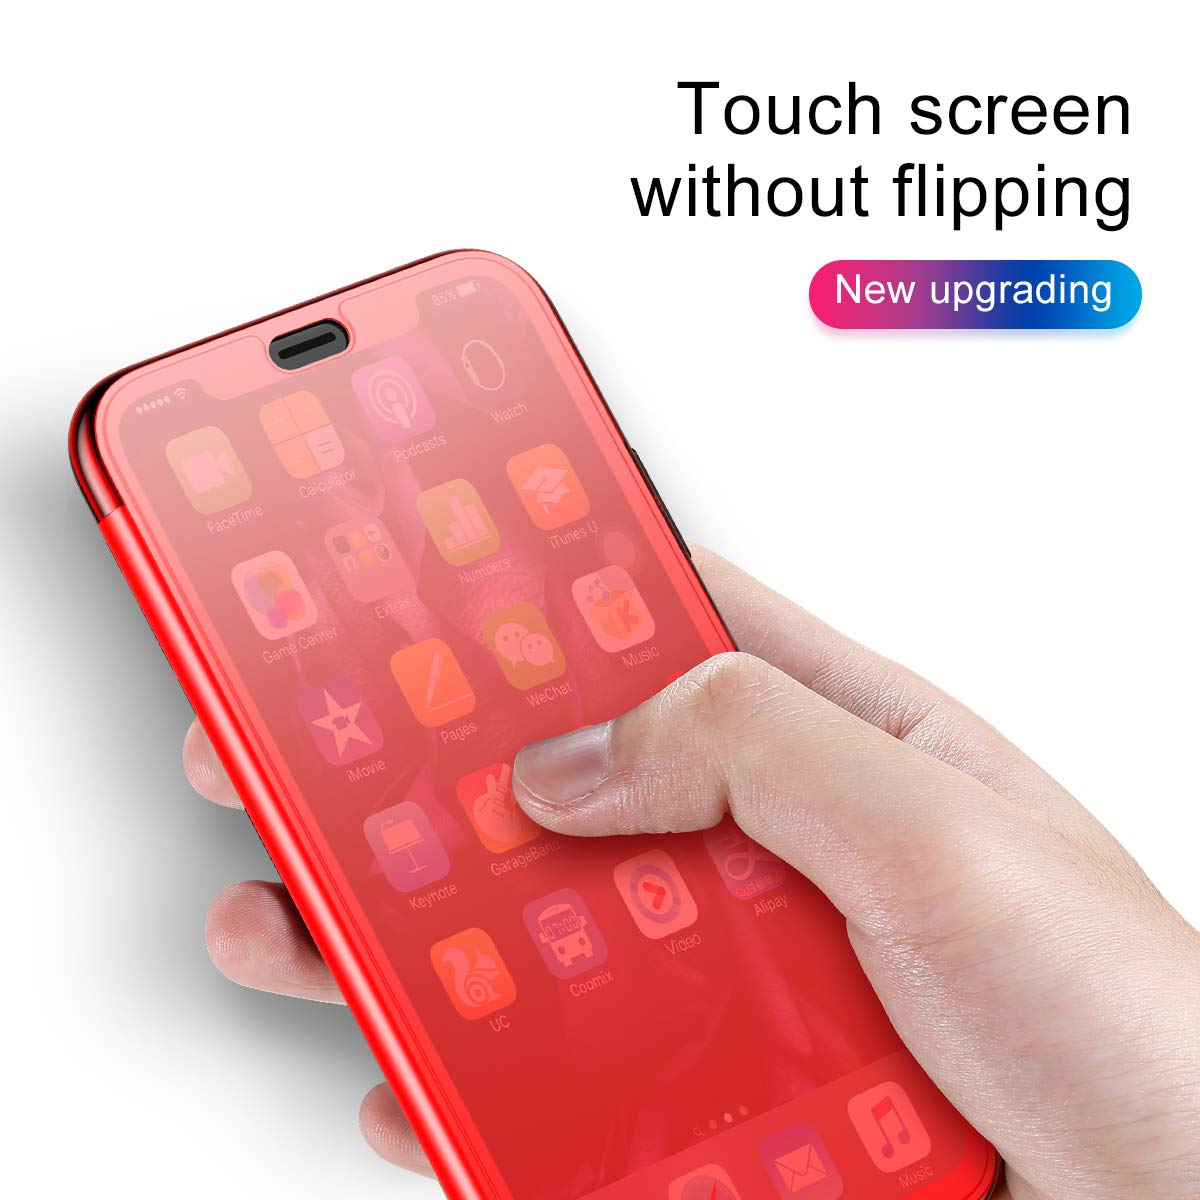 AICase iPhone XR 6 1'' 2018 Flip Case, AICase Clear View Translucent Touch  Sensible Ultra Thin Slim Window Front Flip Cover Case for Apple iPhone XR